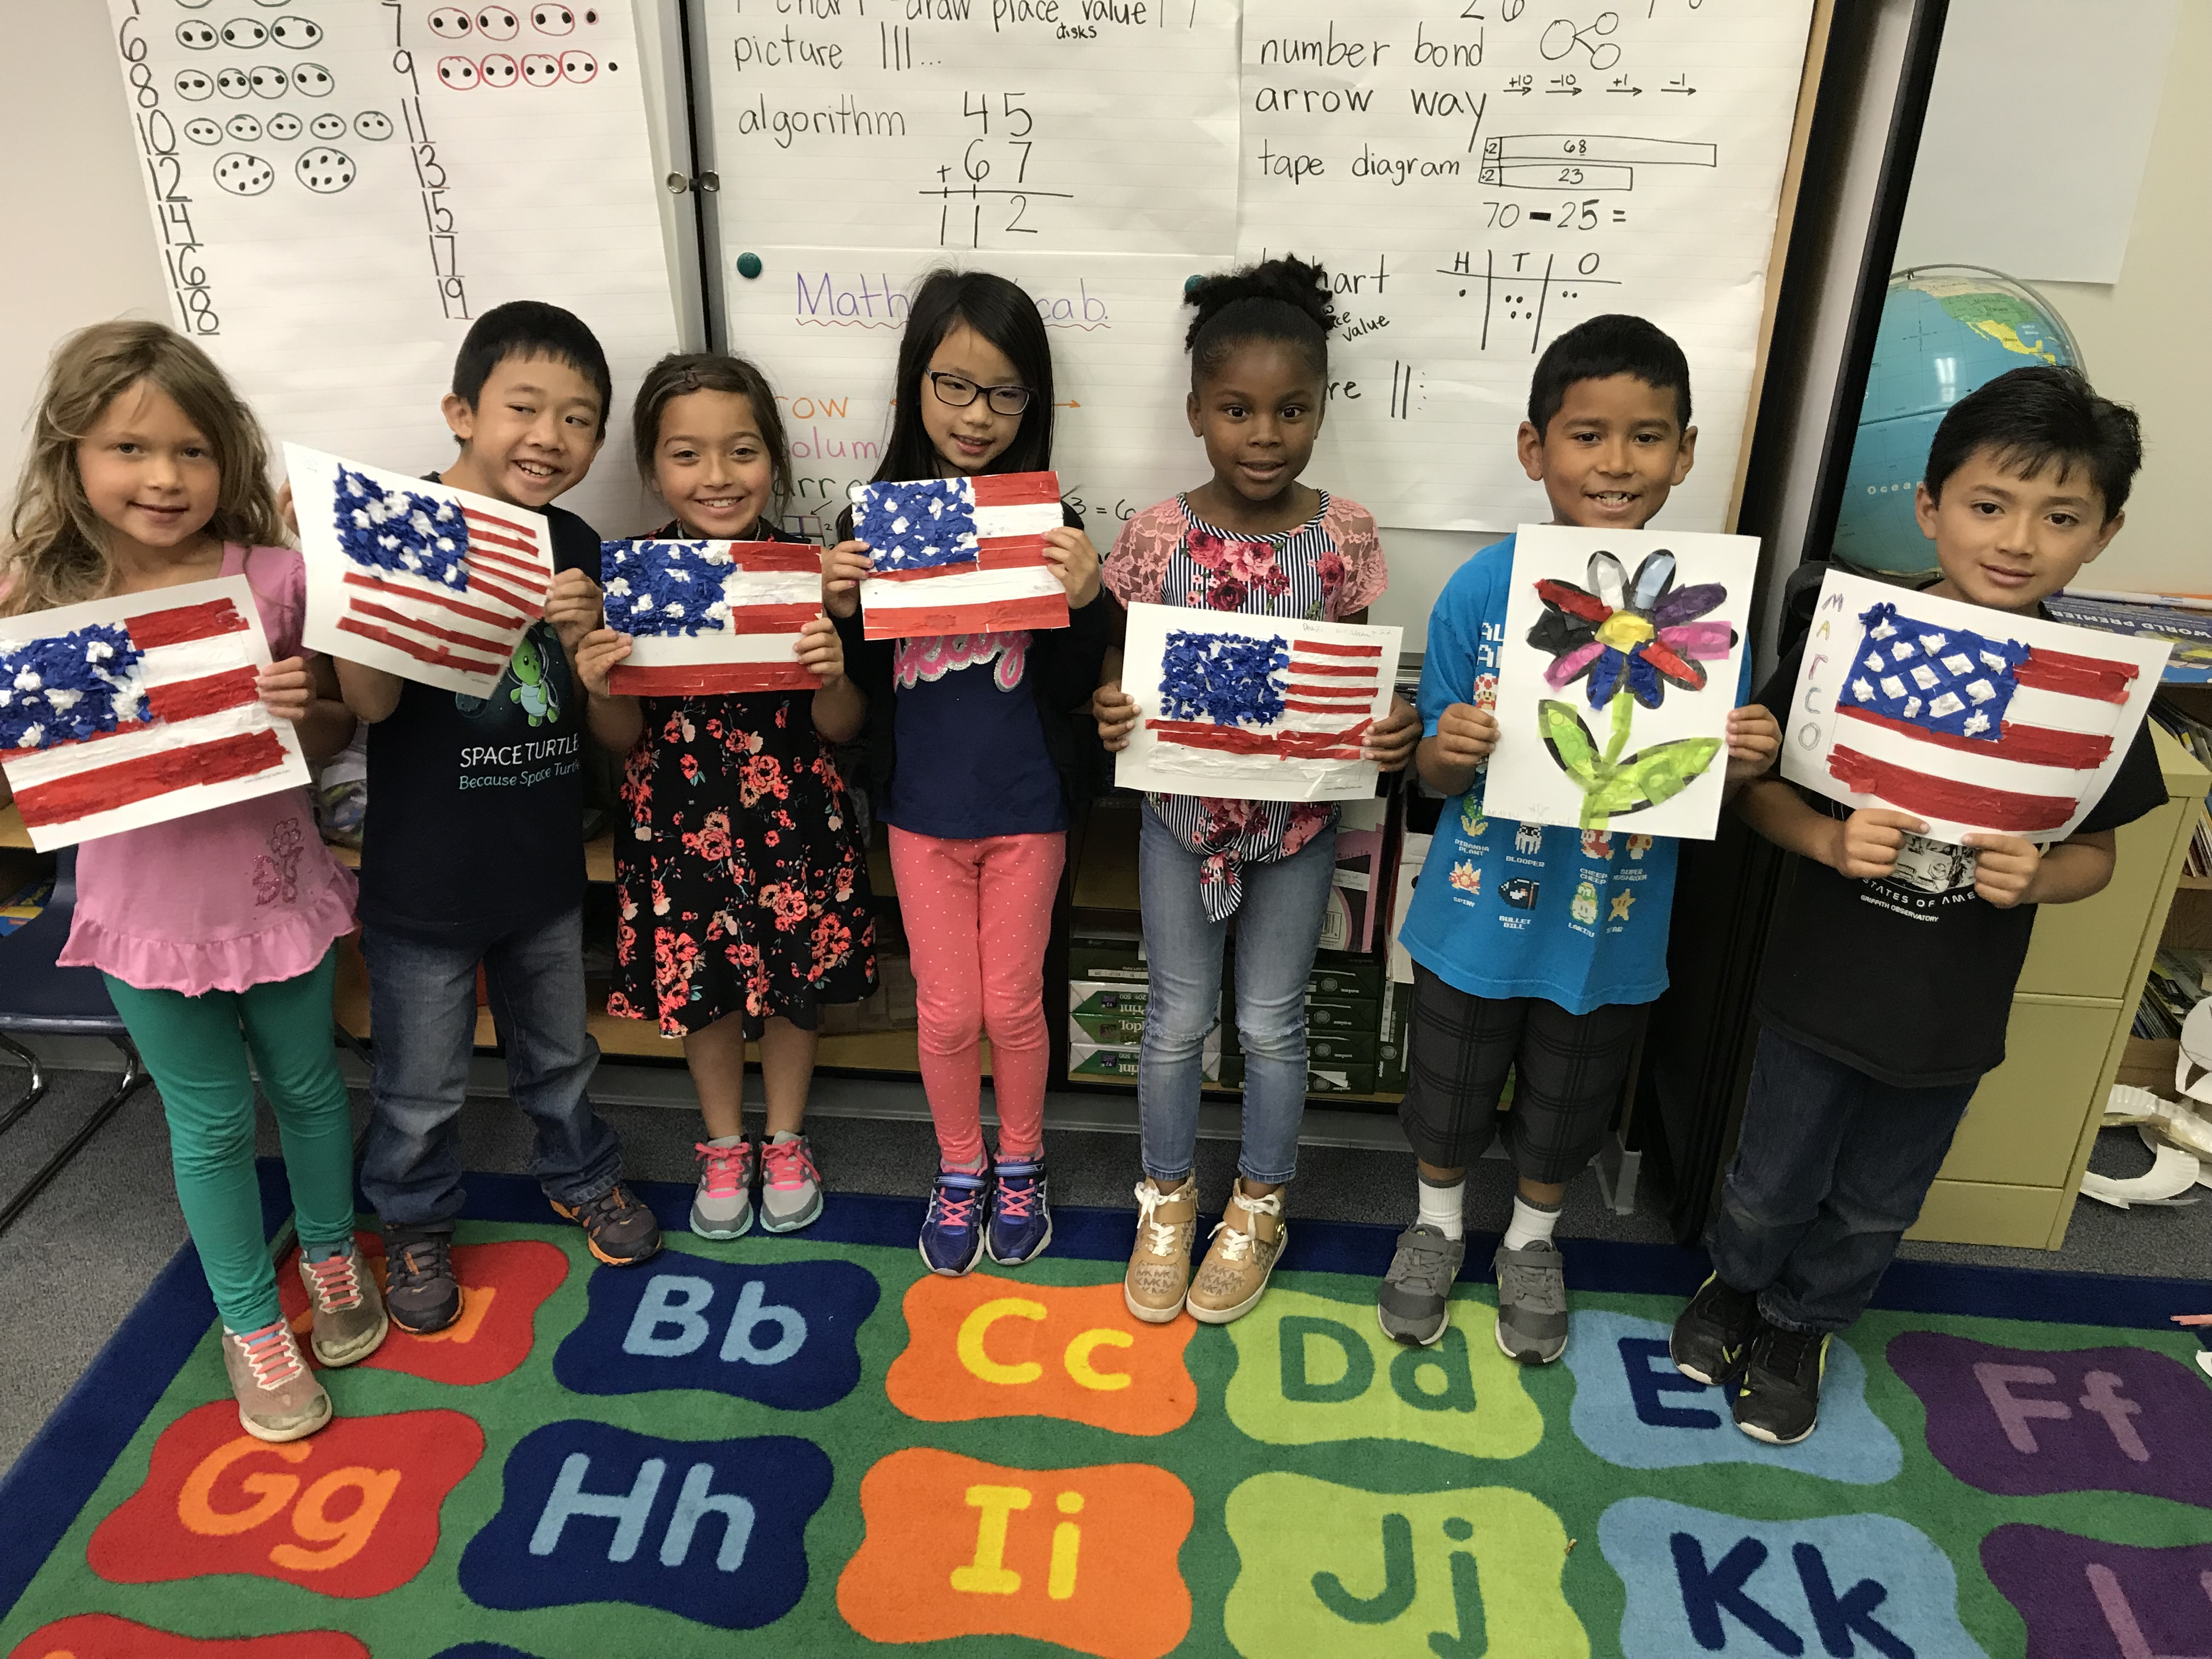 Children holding their art work of the american flag